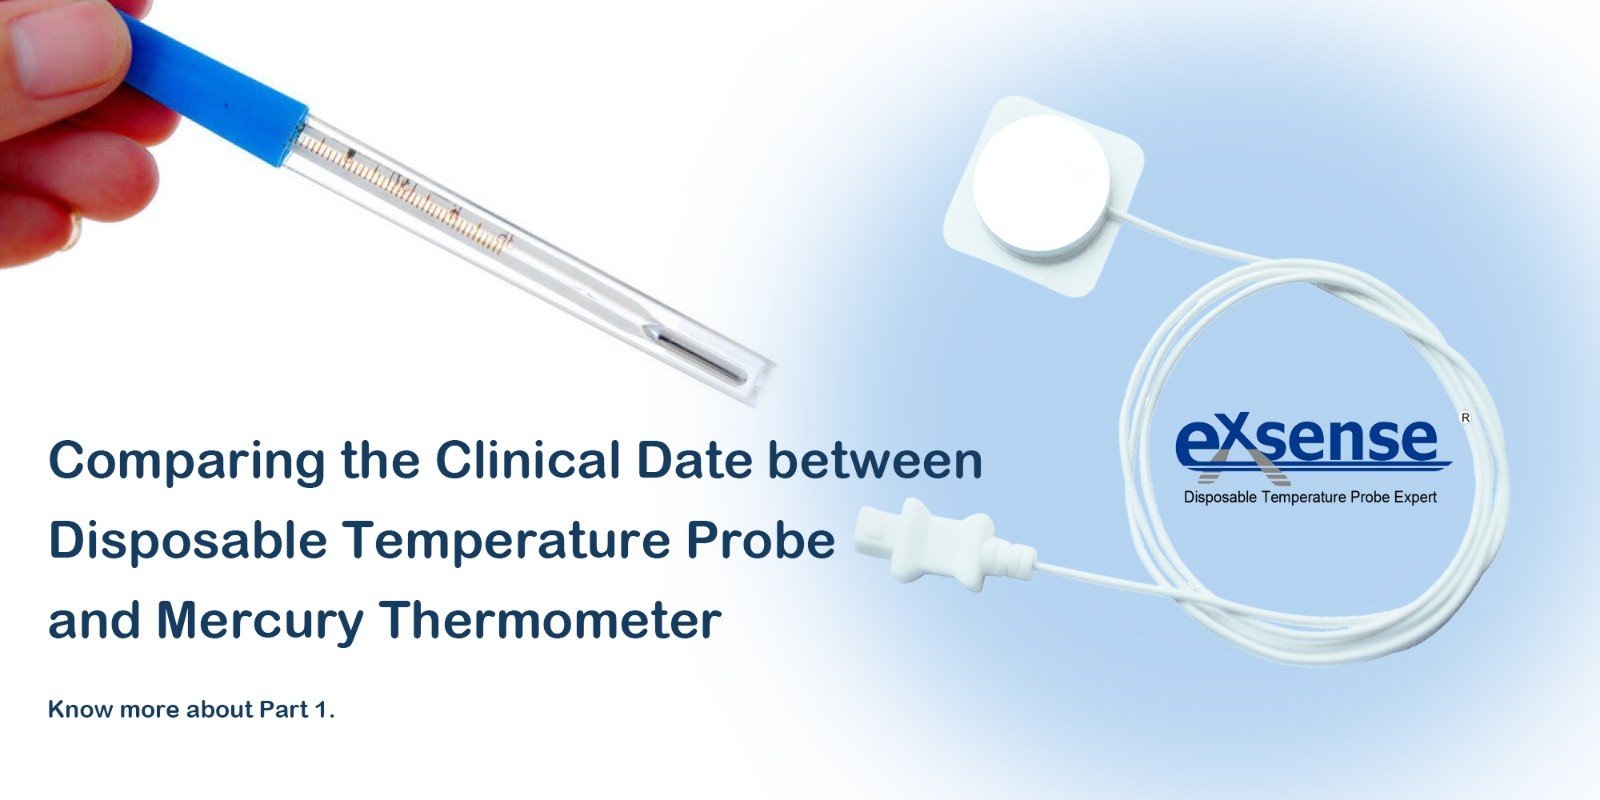 Comparing the Clinical Date between Disposable Temperature Probe and Mercury Thermometer